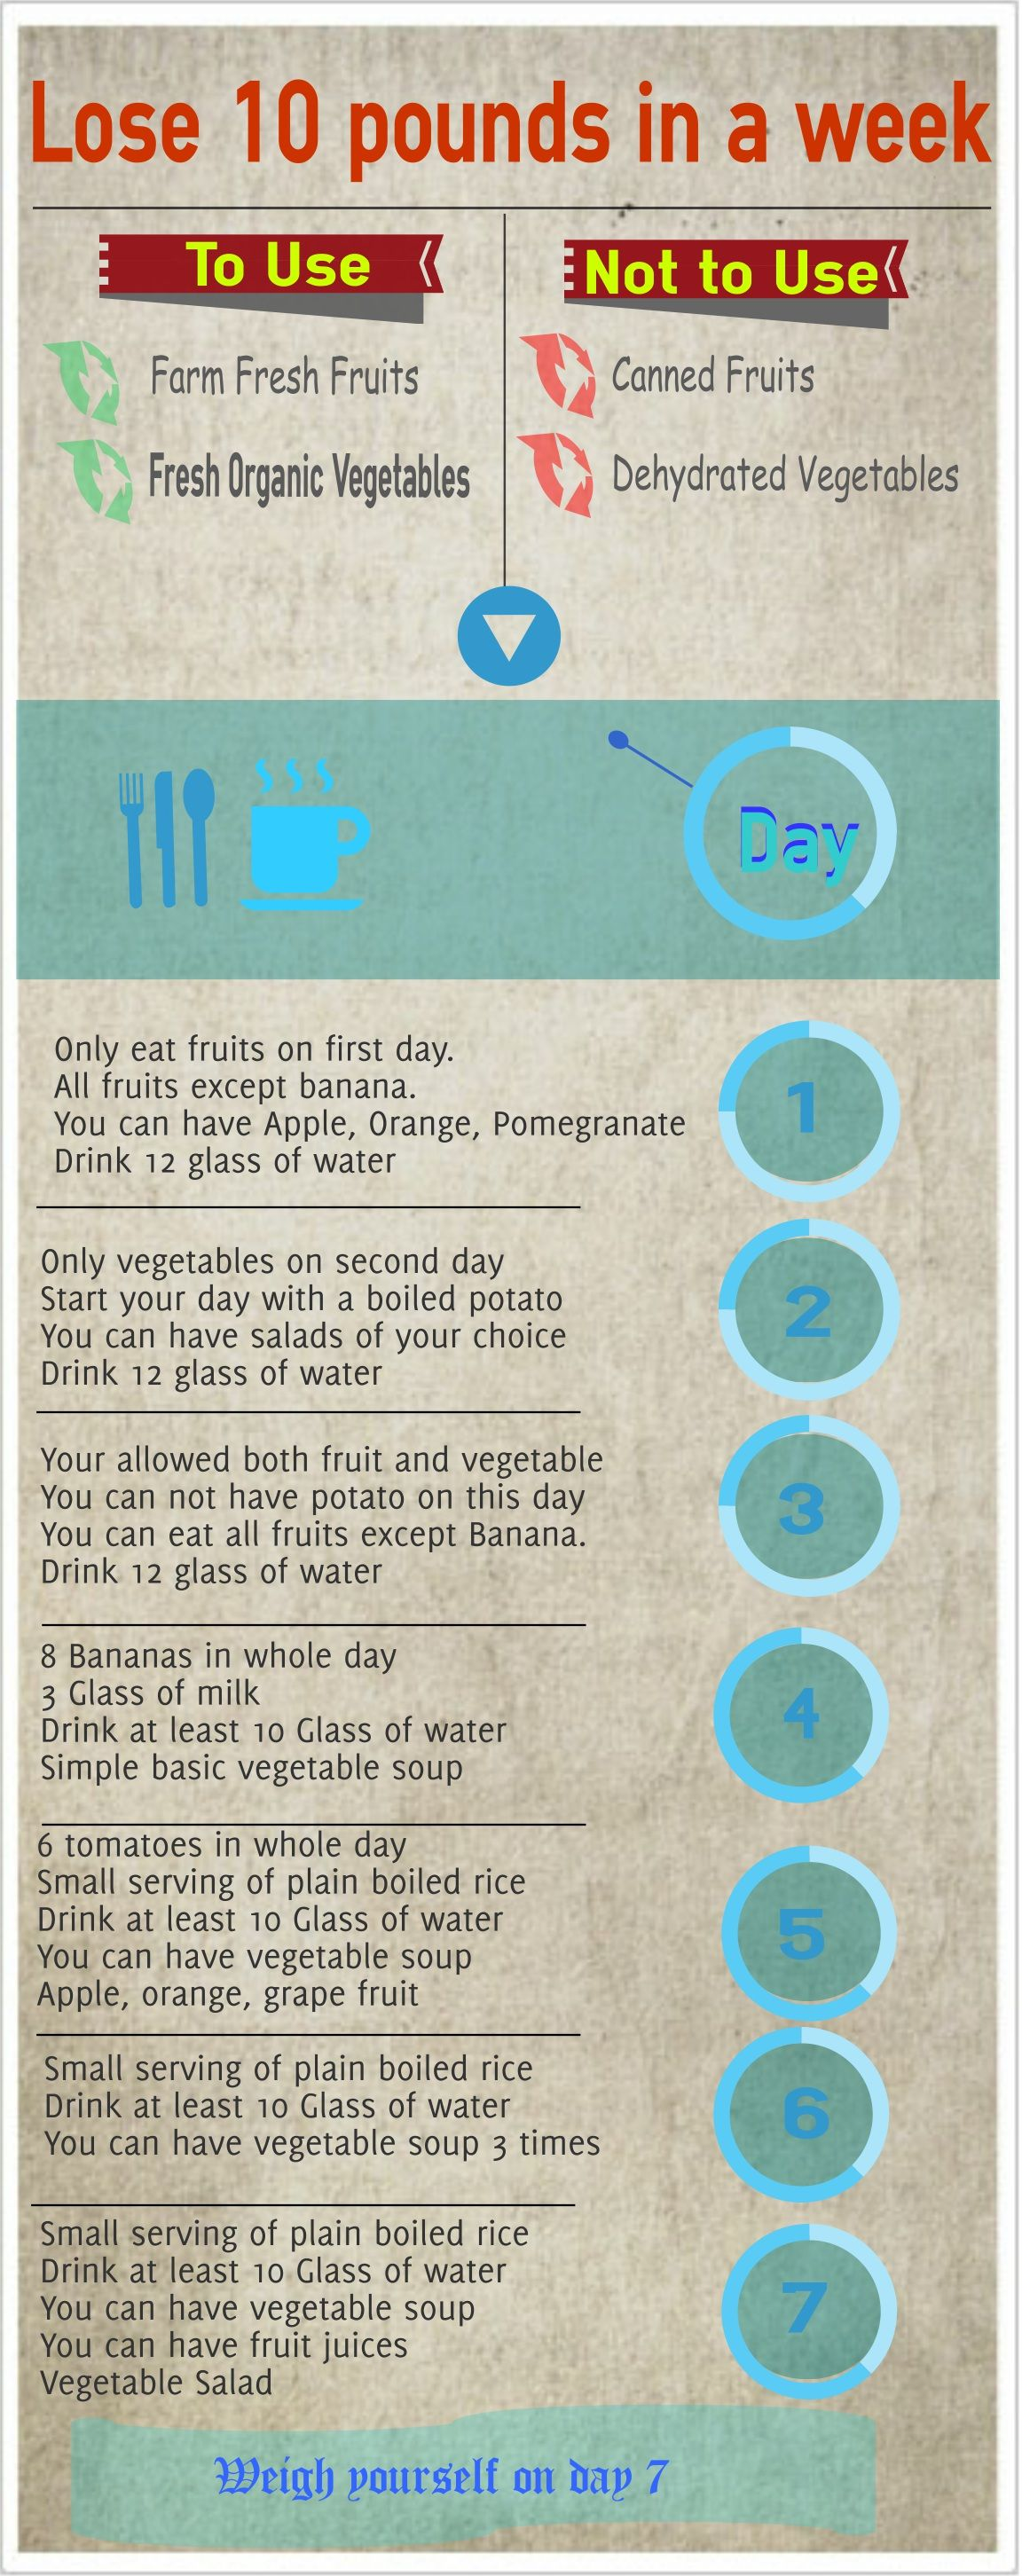 Pin On Diet And Health